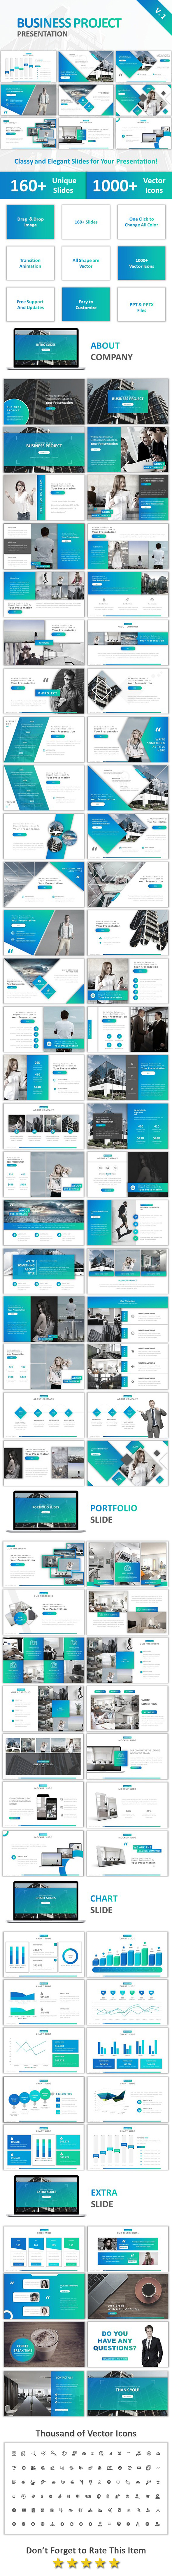 Business Project Powerpoint - Business PowerPoint Templates